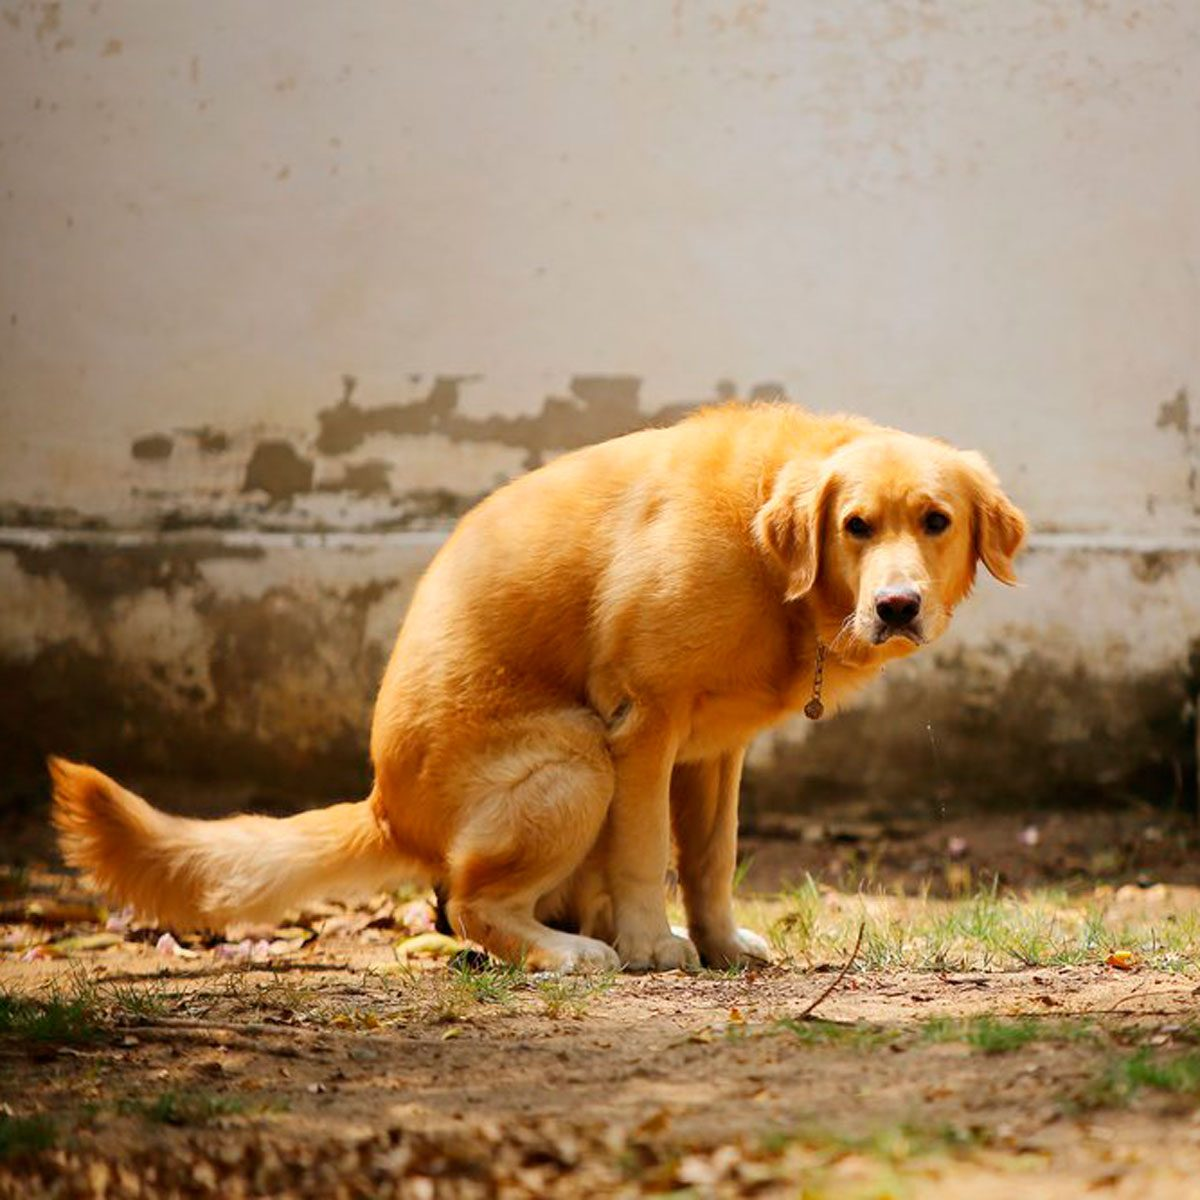 Dog Has Diarrhea On Rug: This Is Why Dogs Spin Around Before They Poop